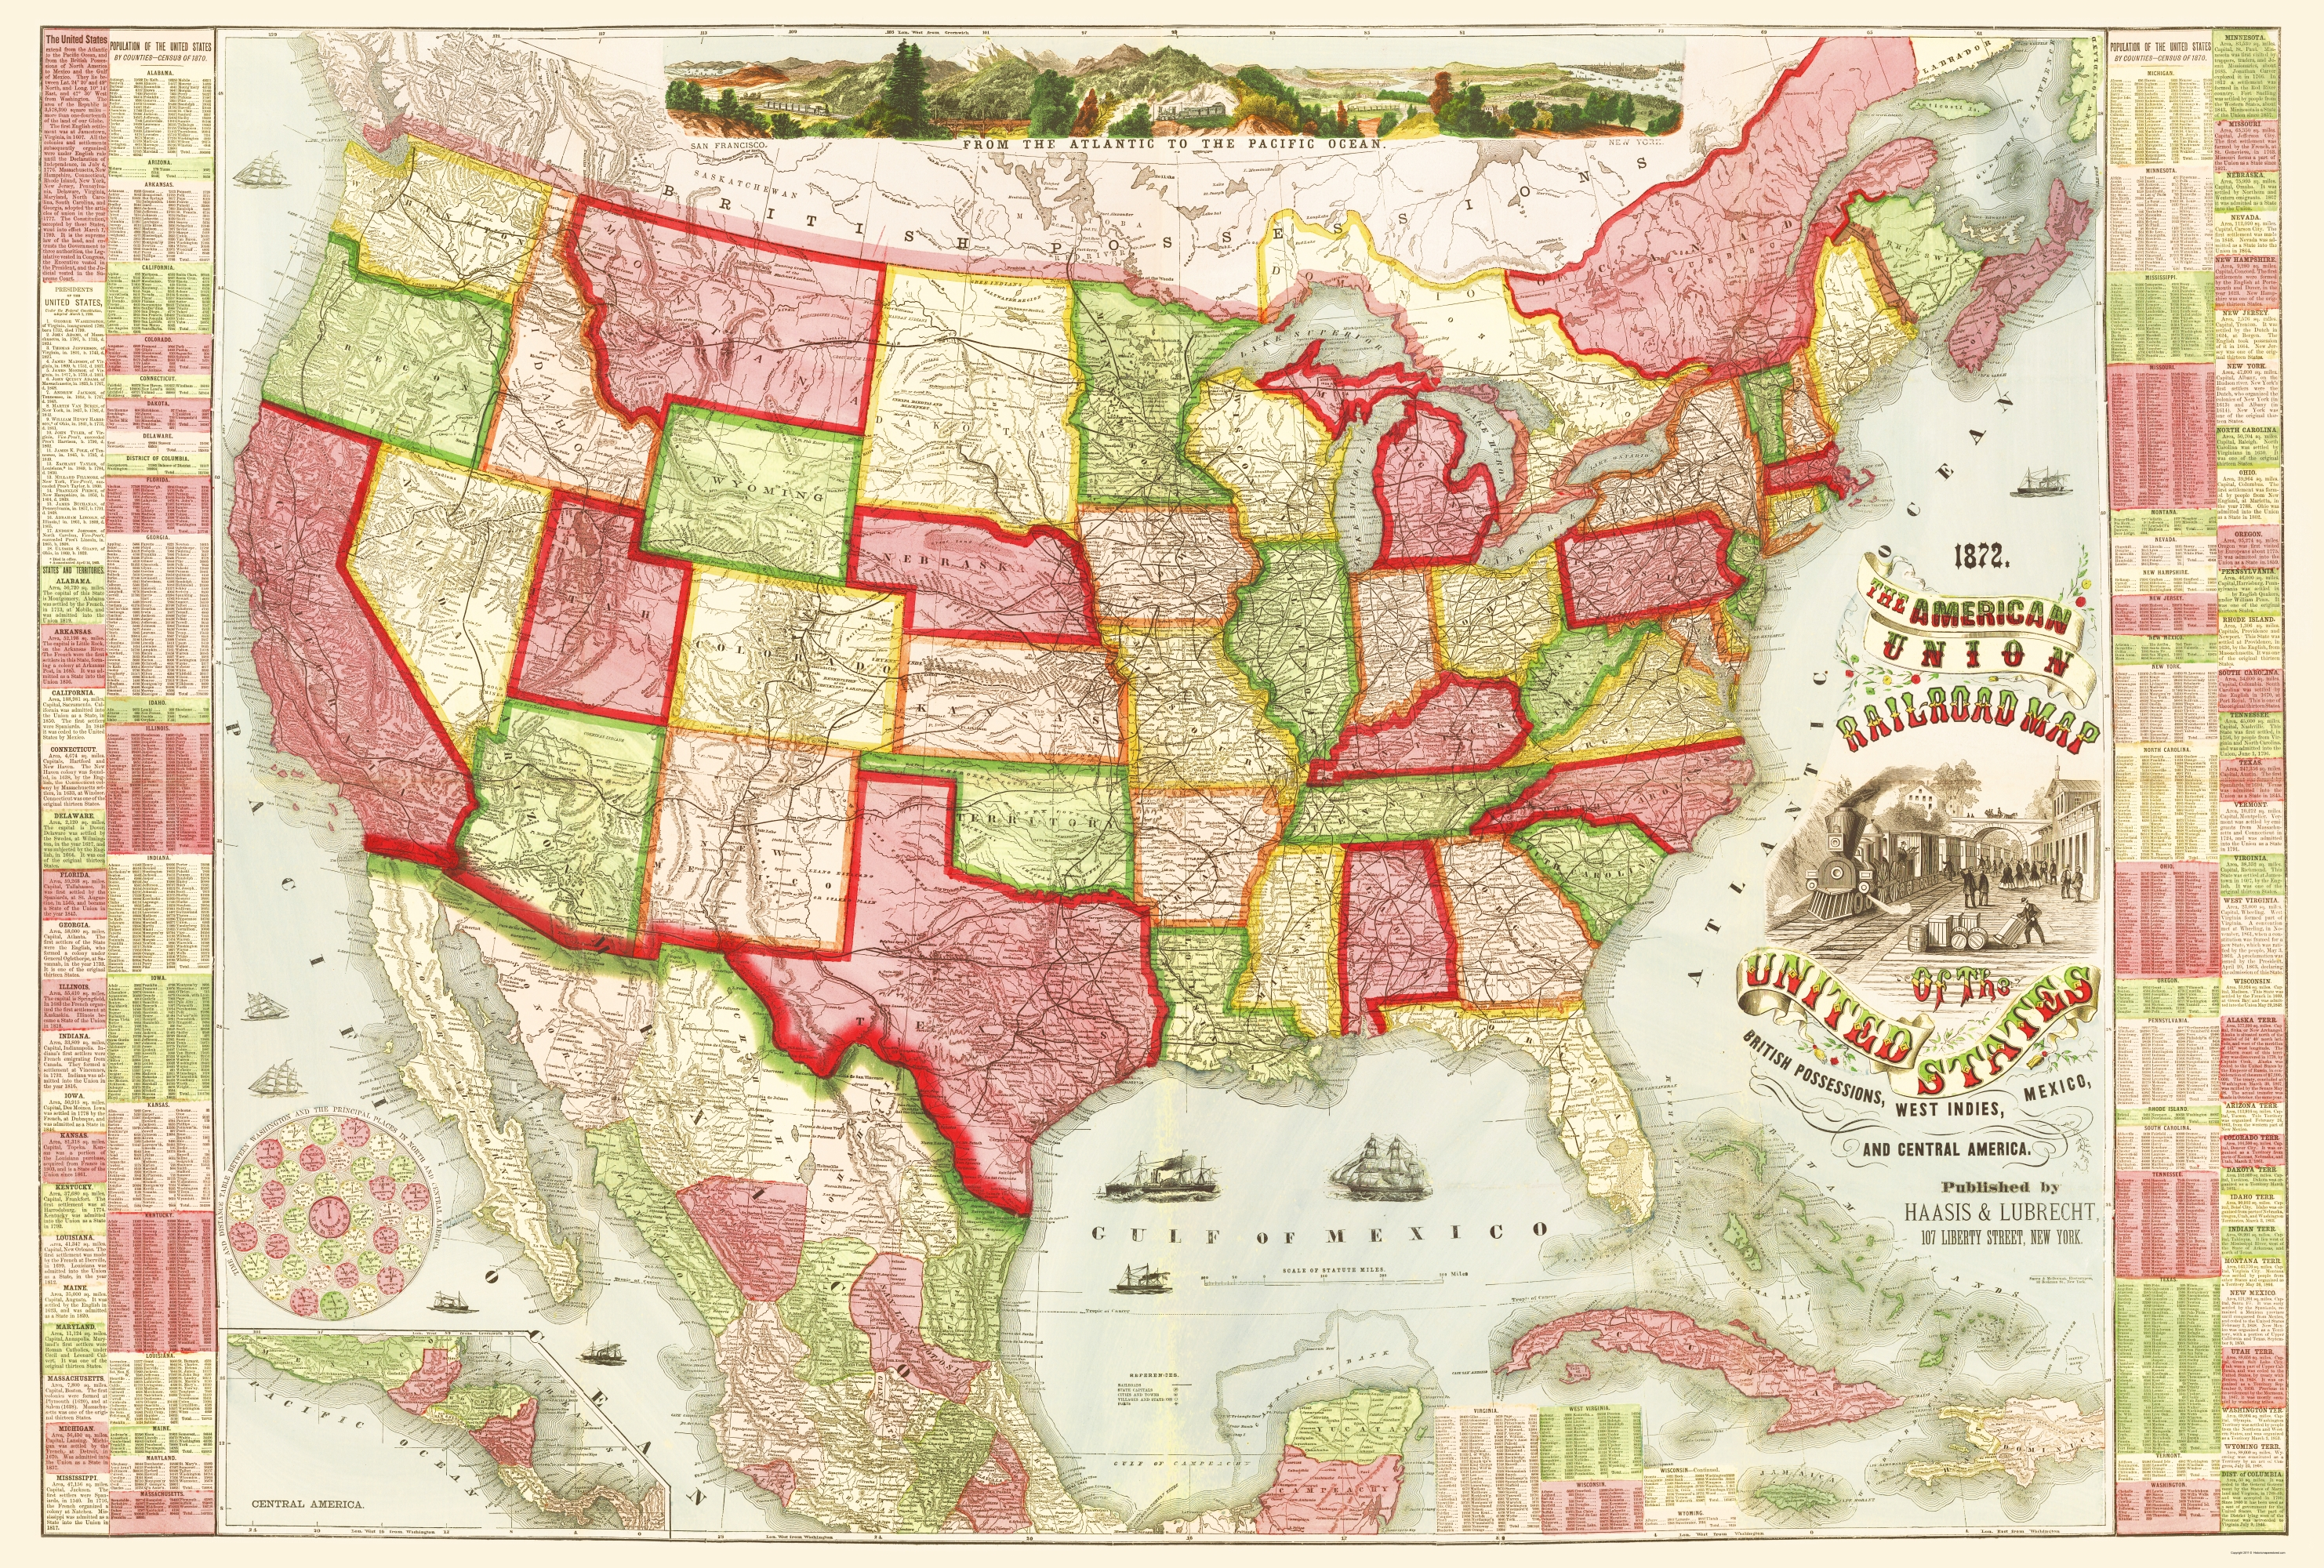 Old Railroad Map American Union Railroads 1866 - Old-map-of-us